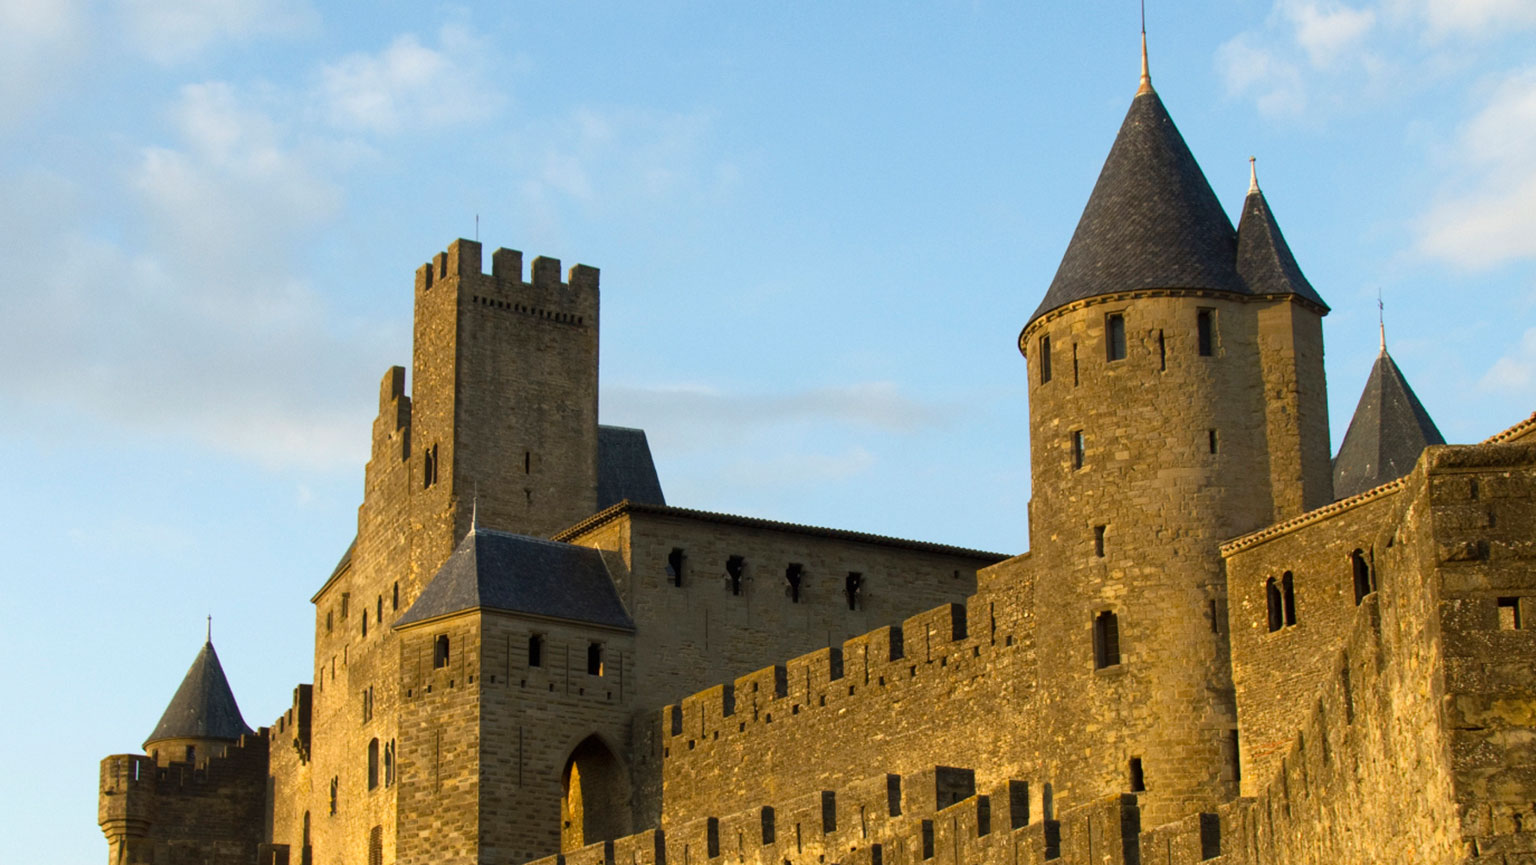 Carcassonne—Cathars and Crusaders